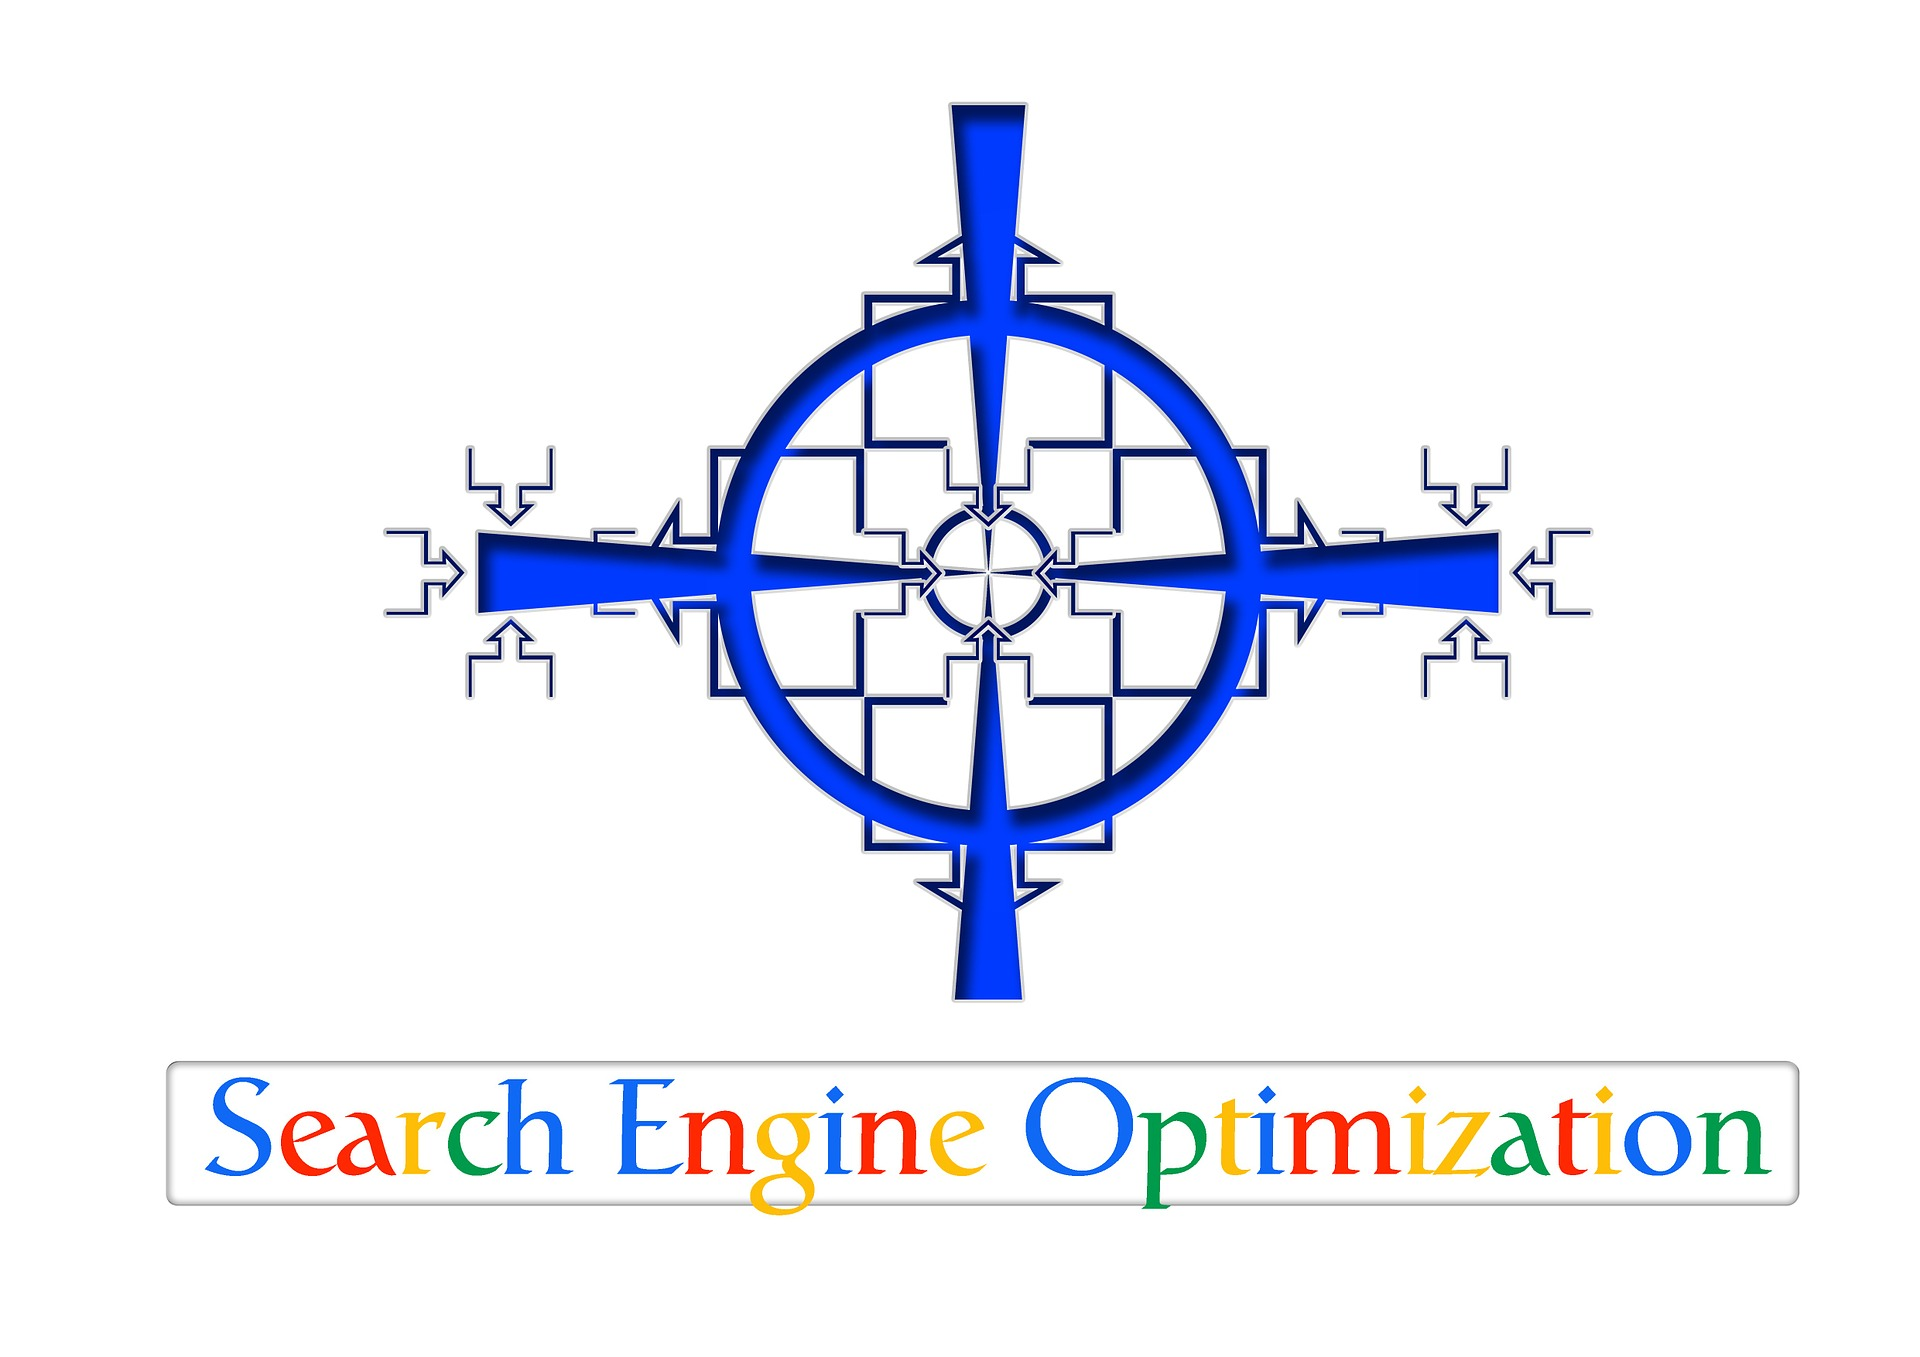 search-engine-optimization-796198_1920